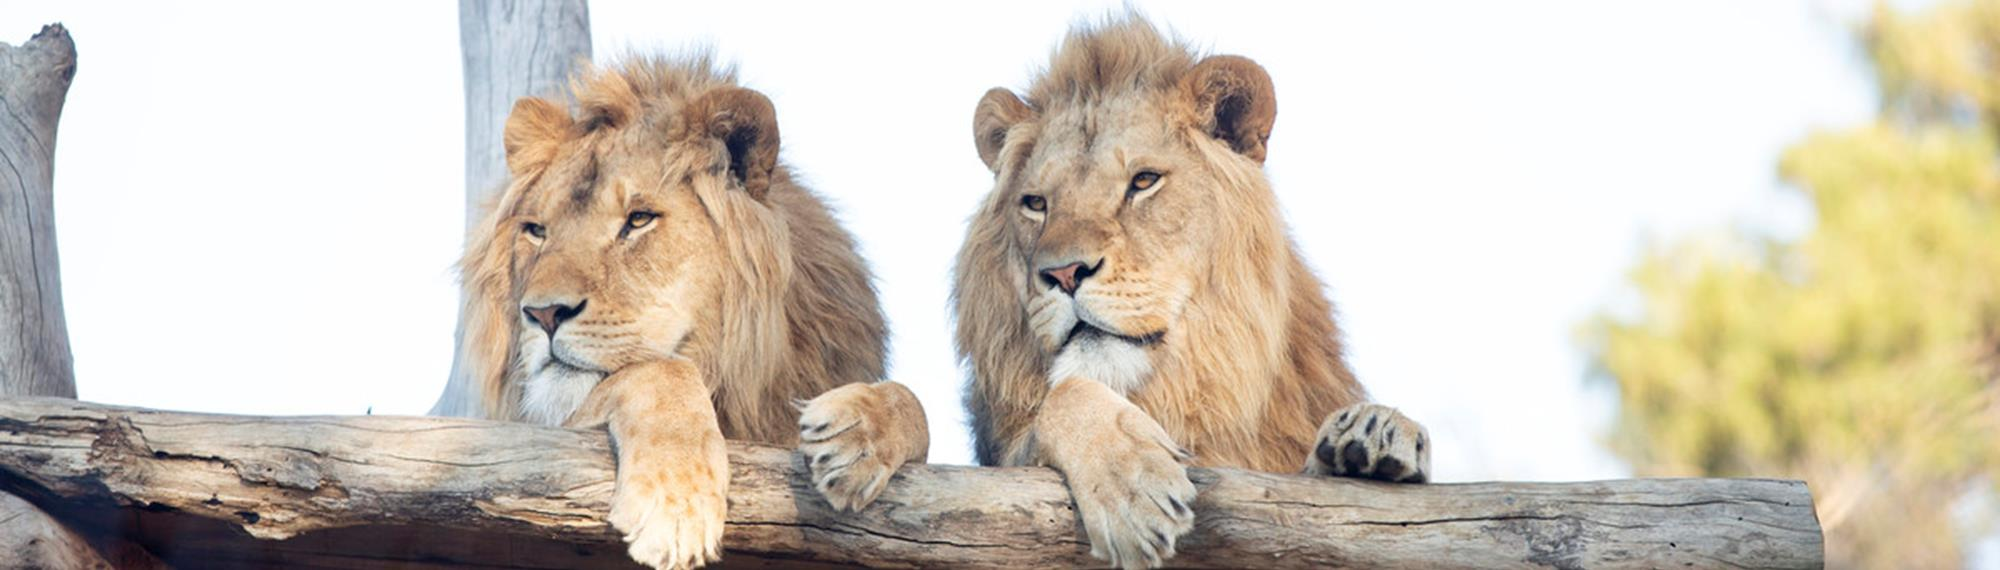 Two male Lions relaxing side by side, on a sunny platform, looking into the distance.